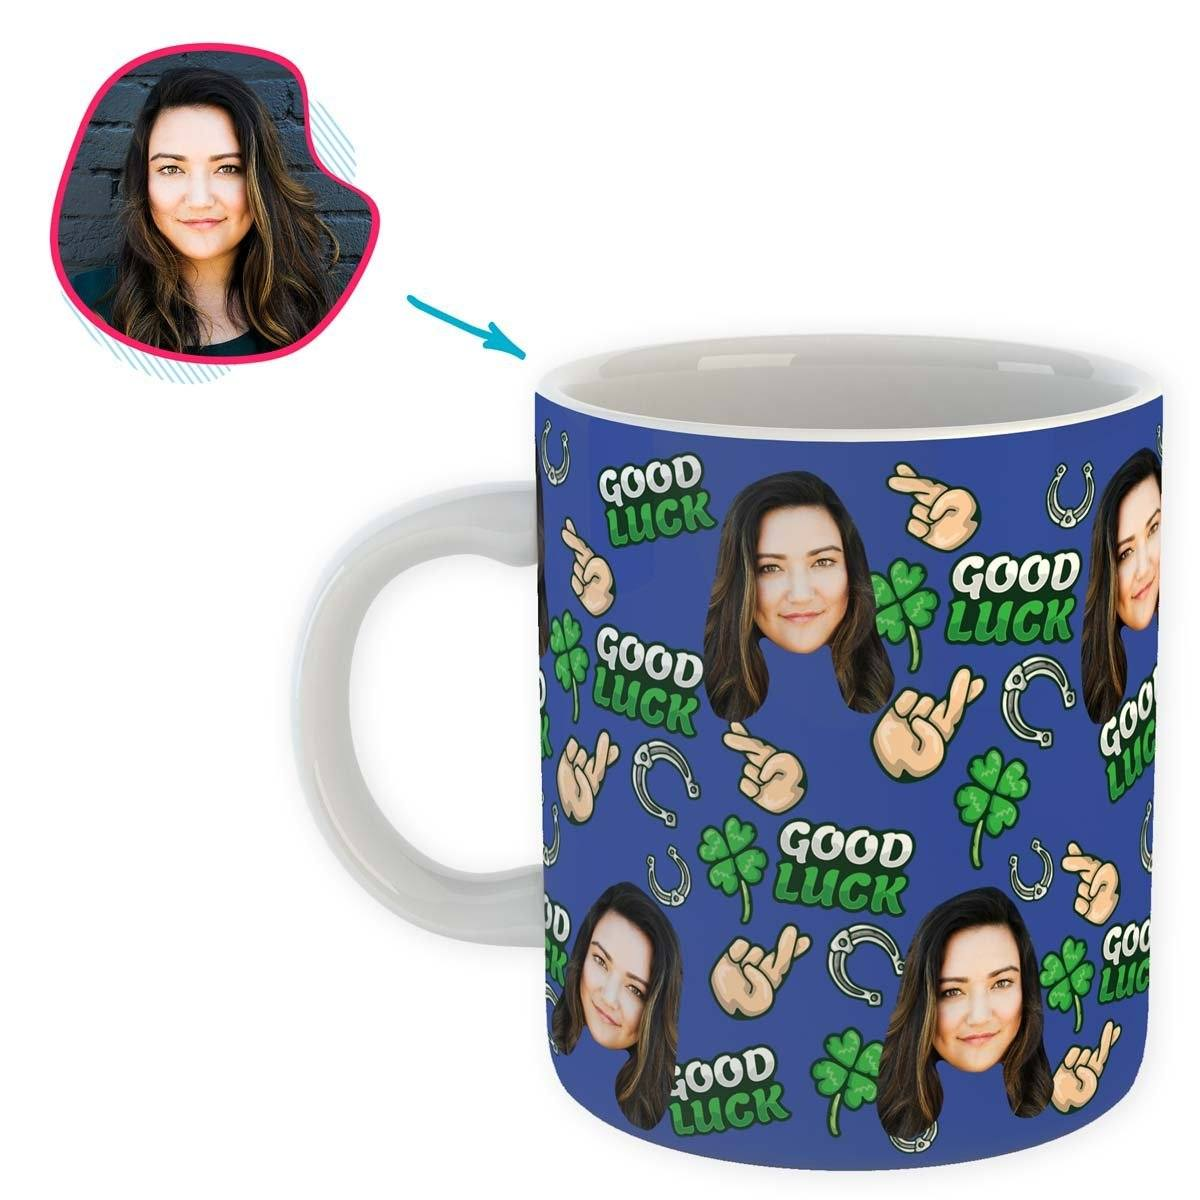 Darkblue Good Luck personalized mug with photo of face printed on it